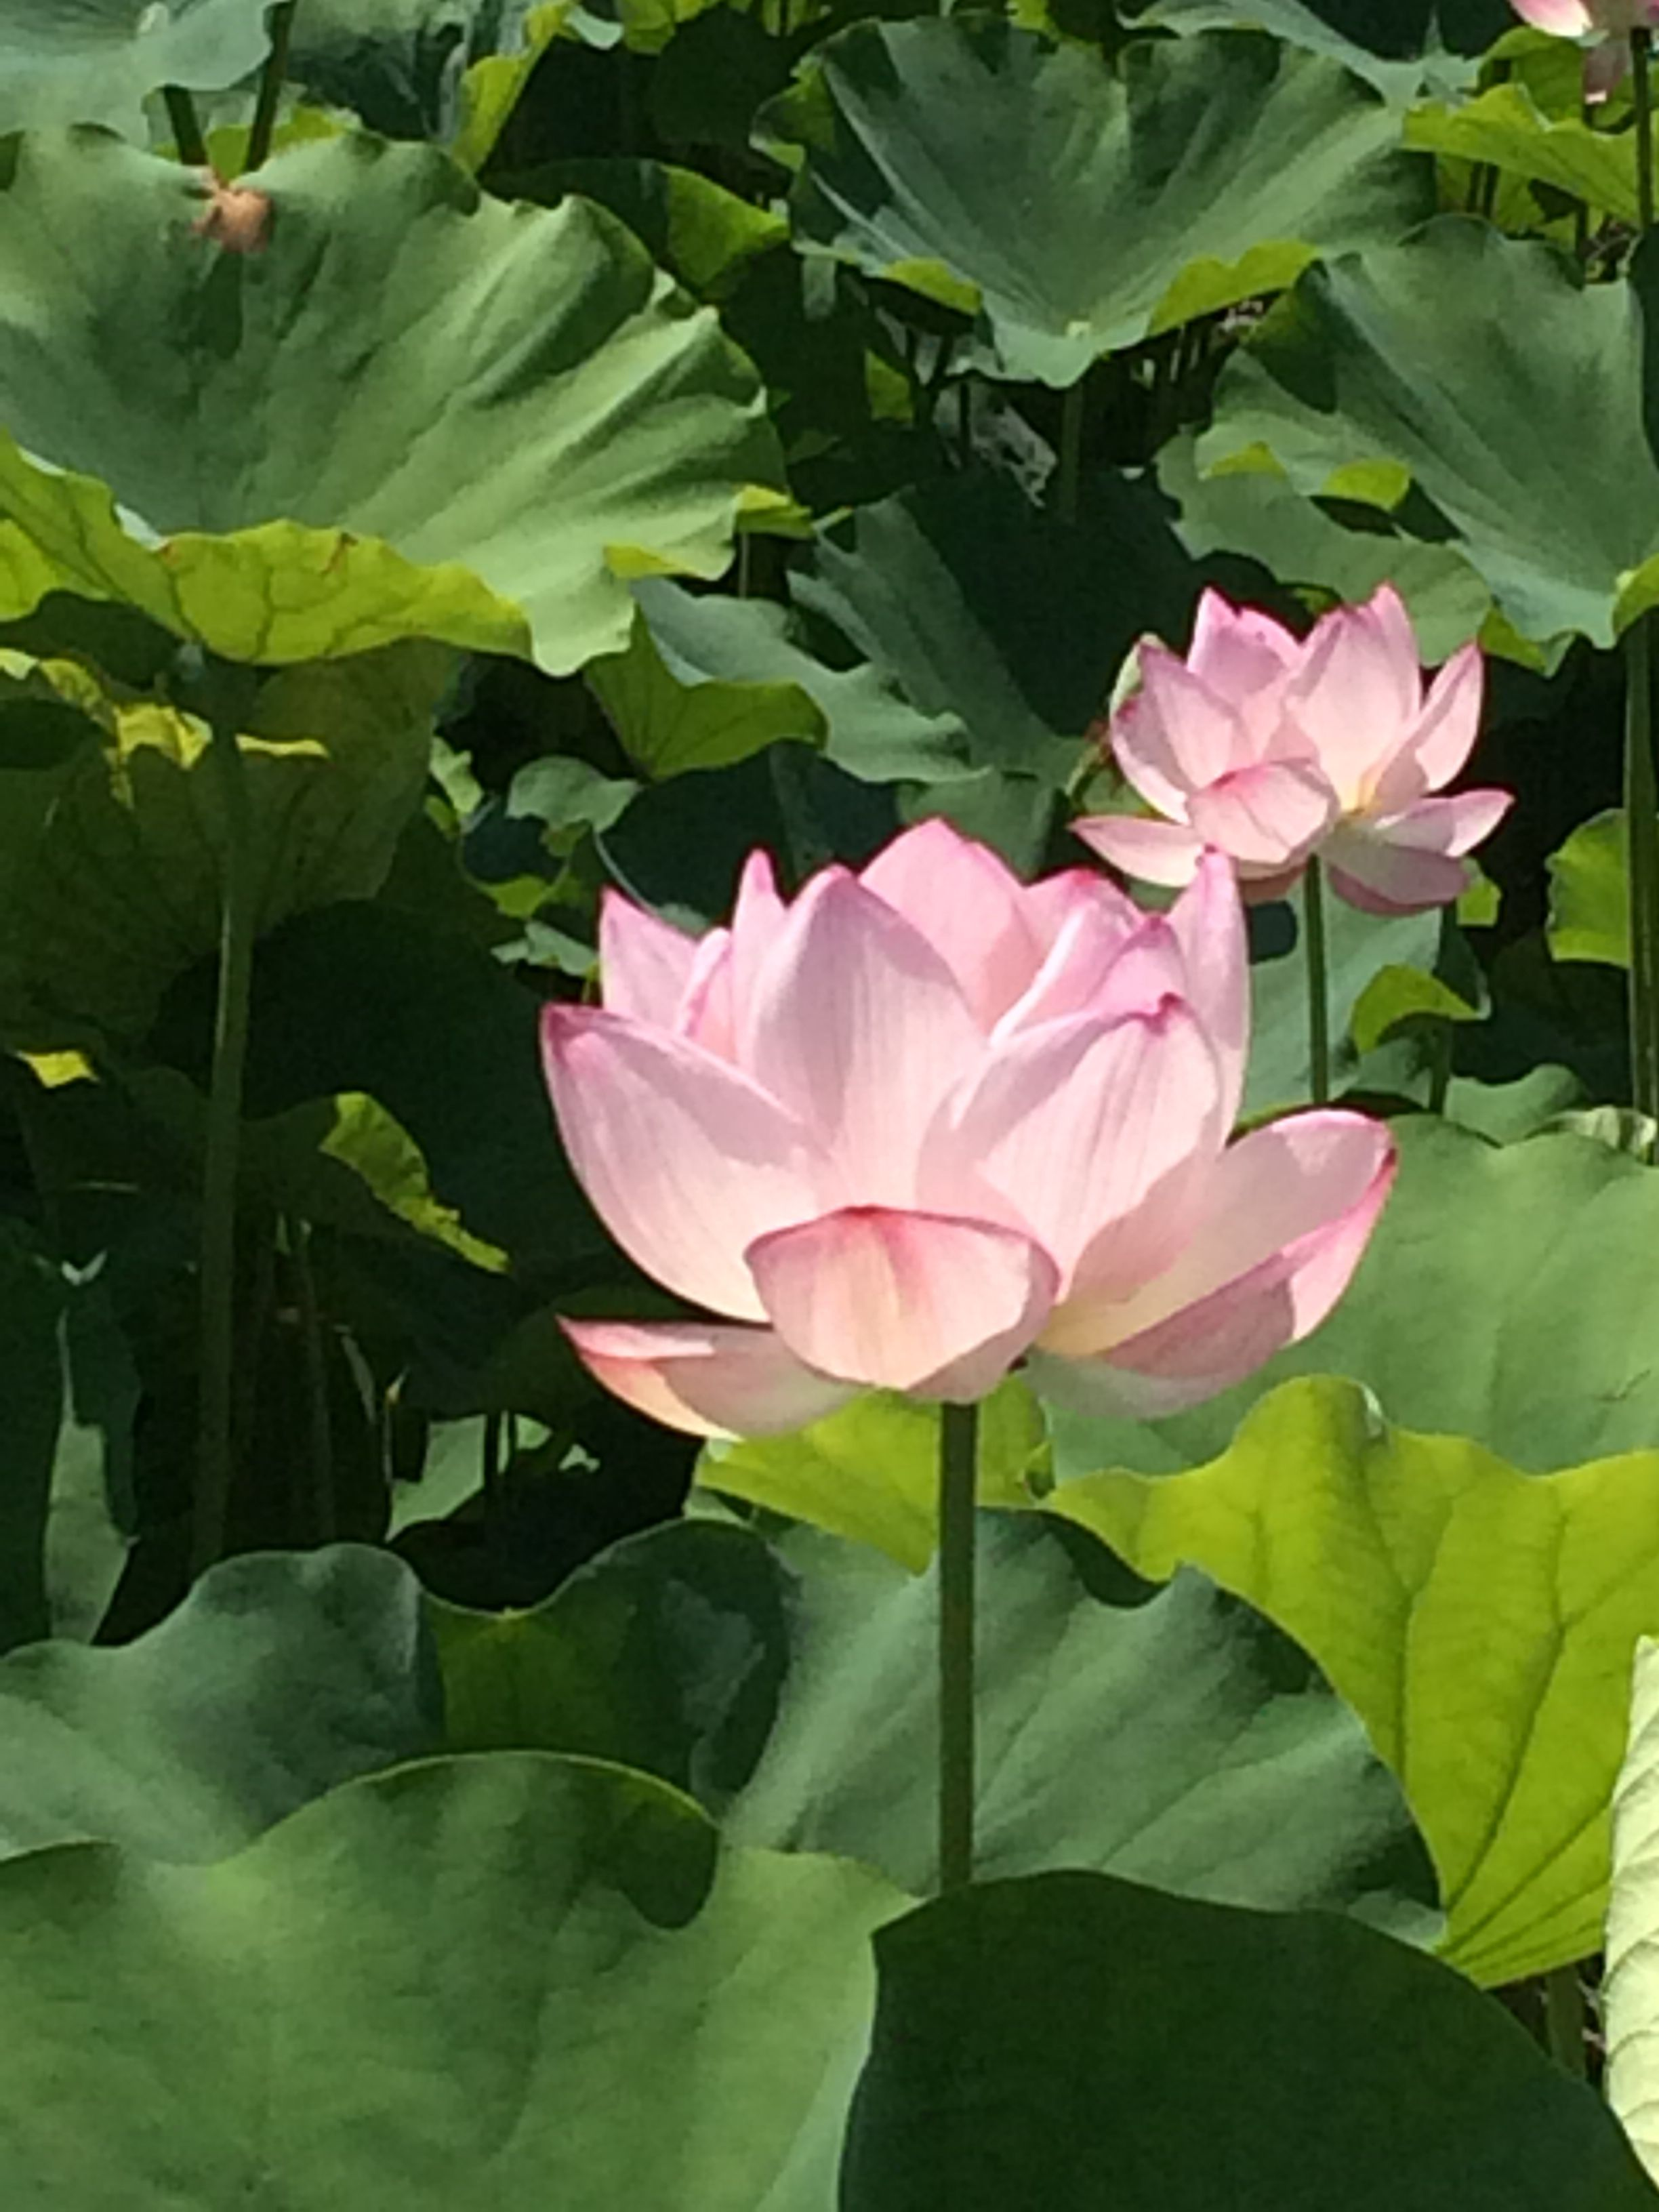 Lotus flower that i found were in bloom there in a very pretty look lotus flower that i found were in bloom there in a very pretty look izmirmasajfo